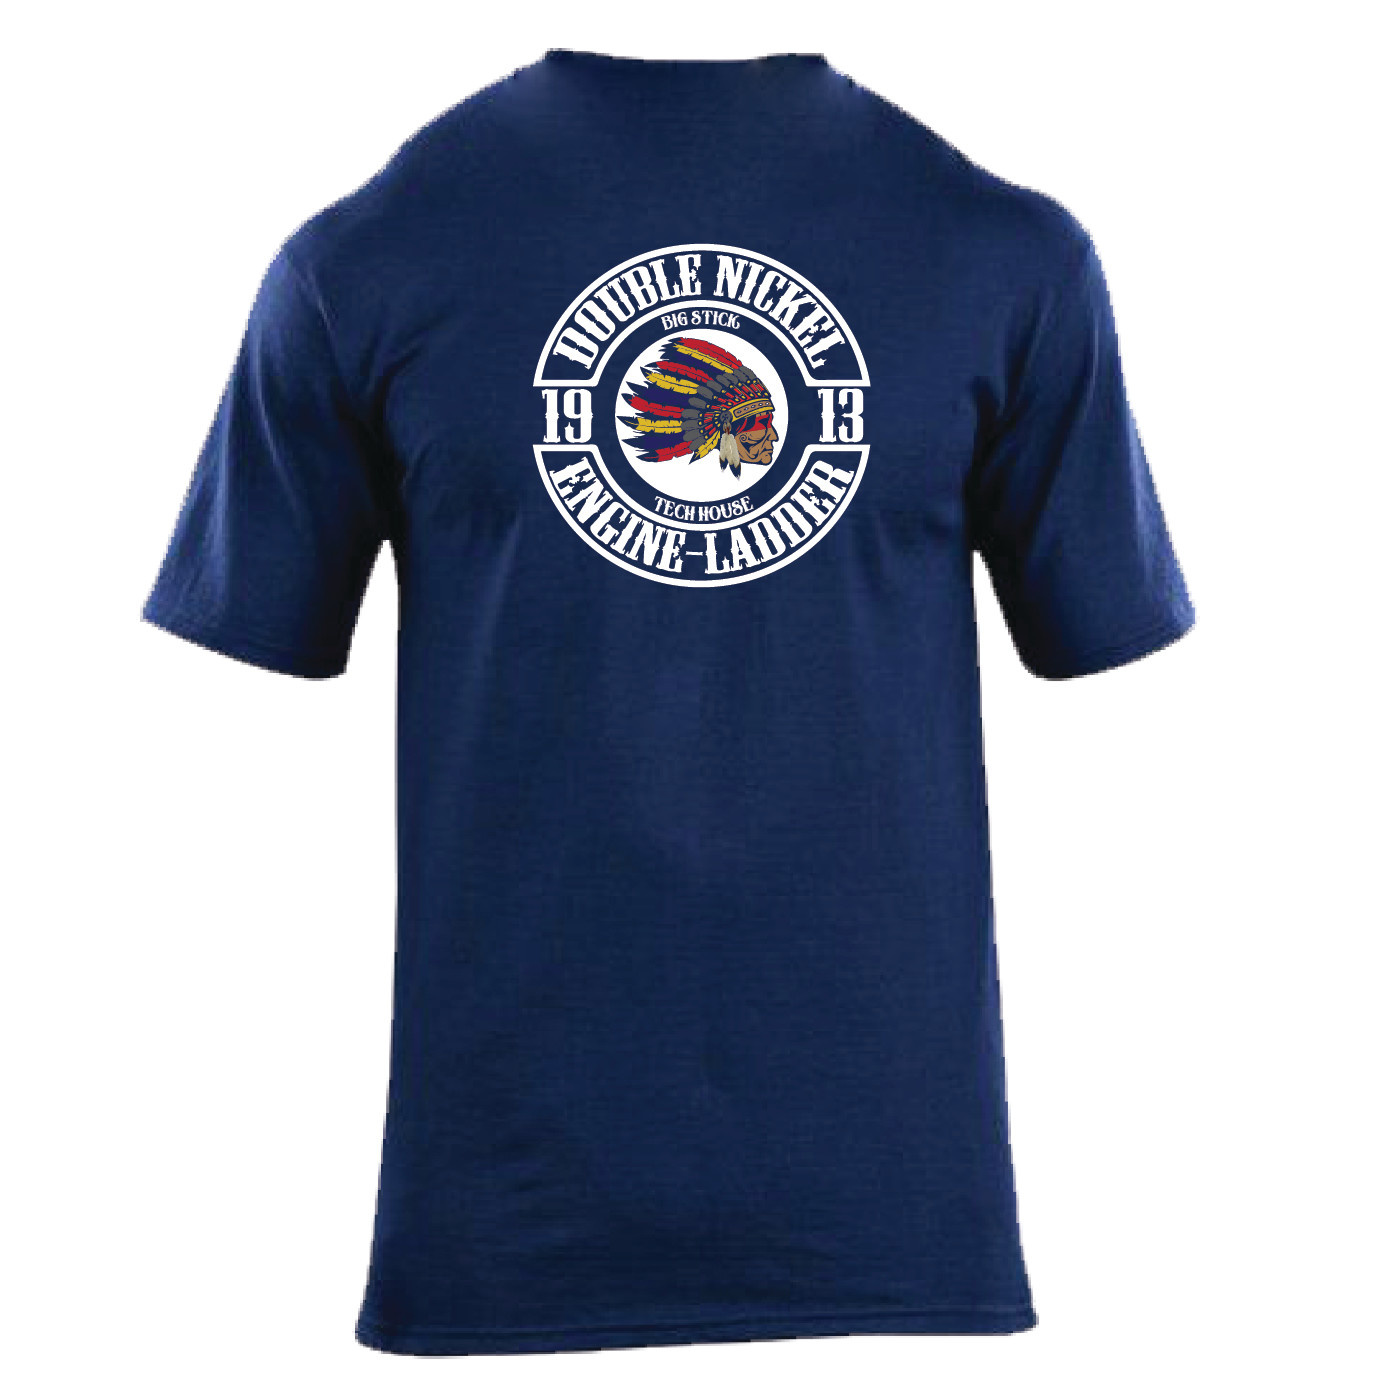 Station Wear T-Shirt (Navy)